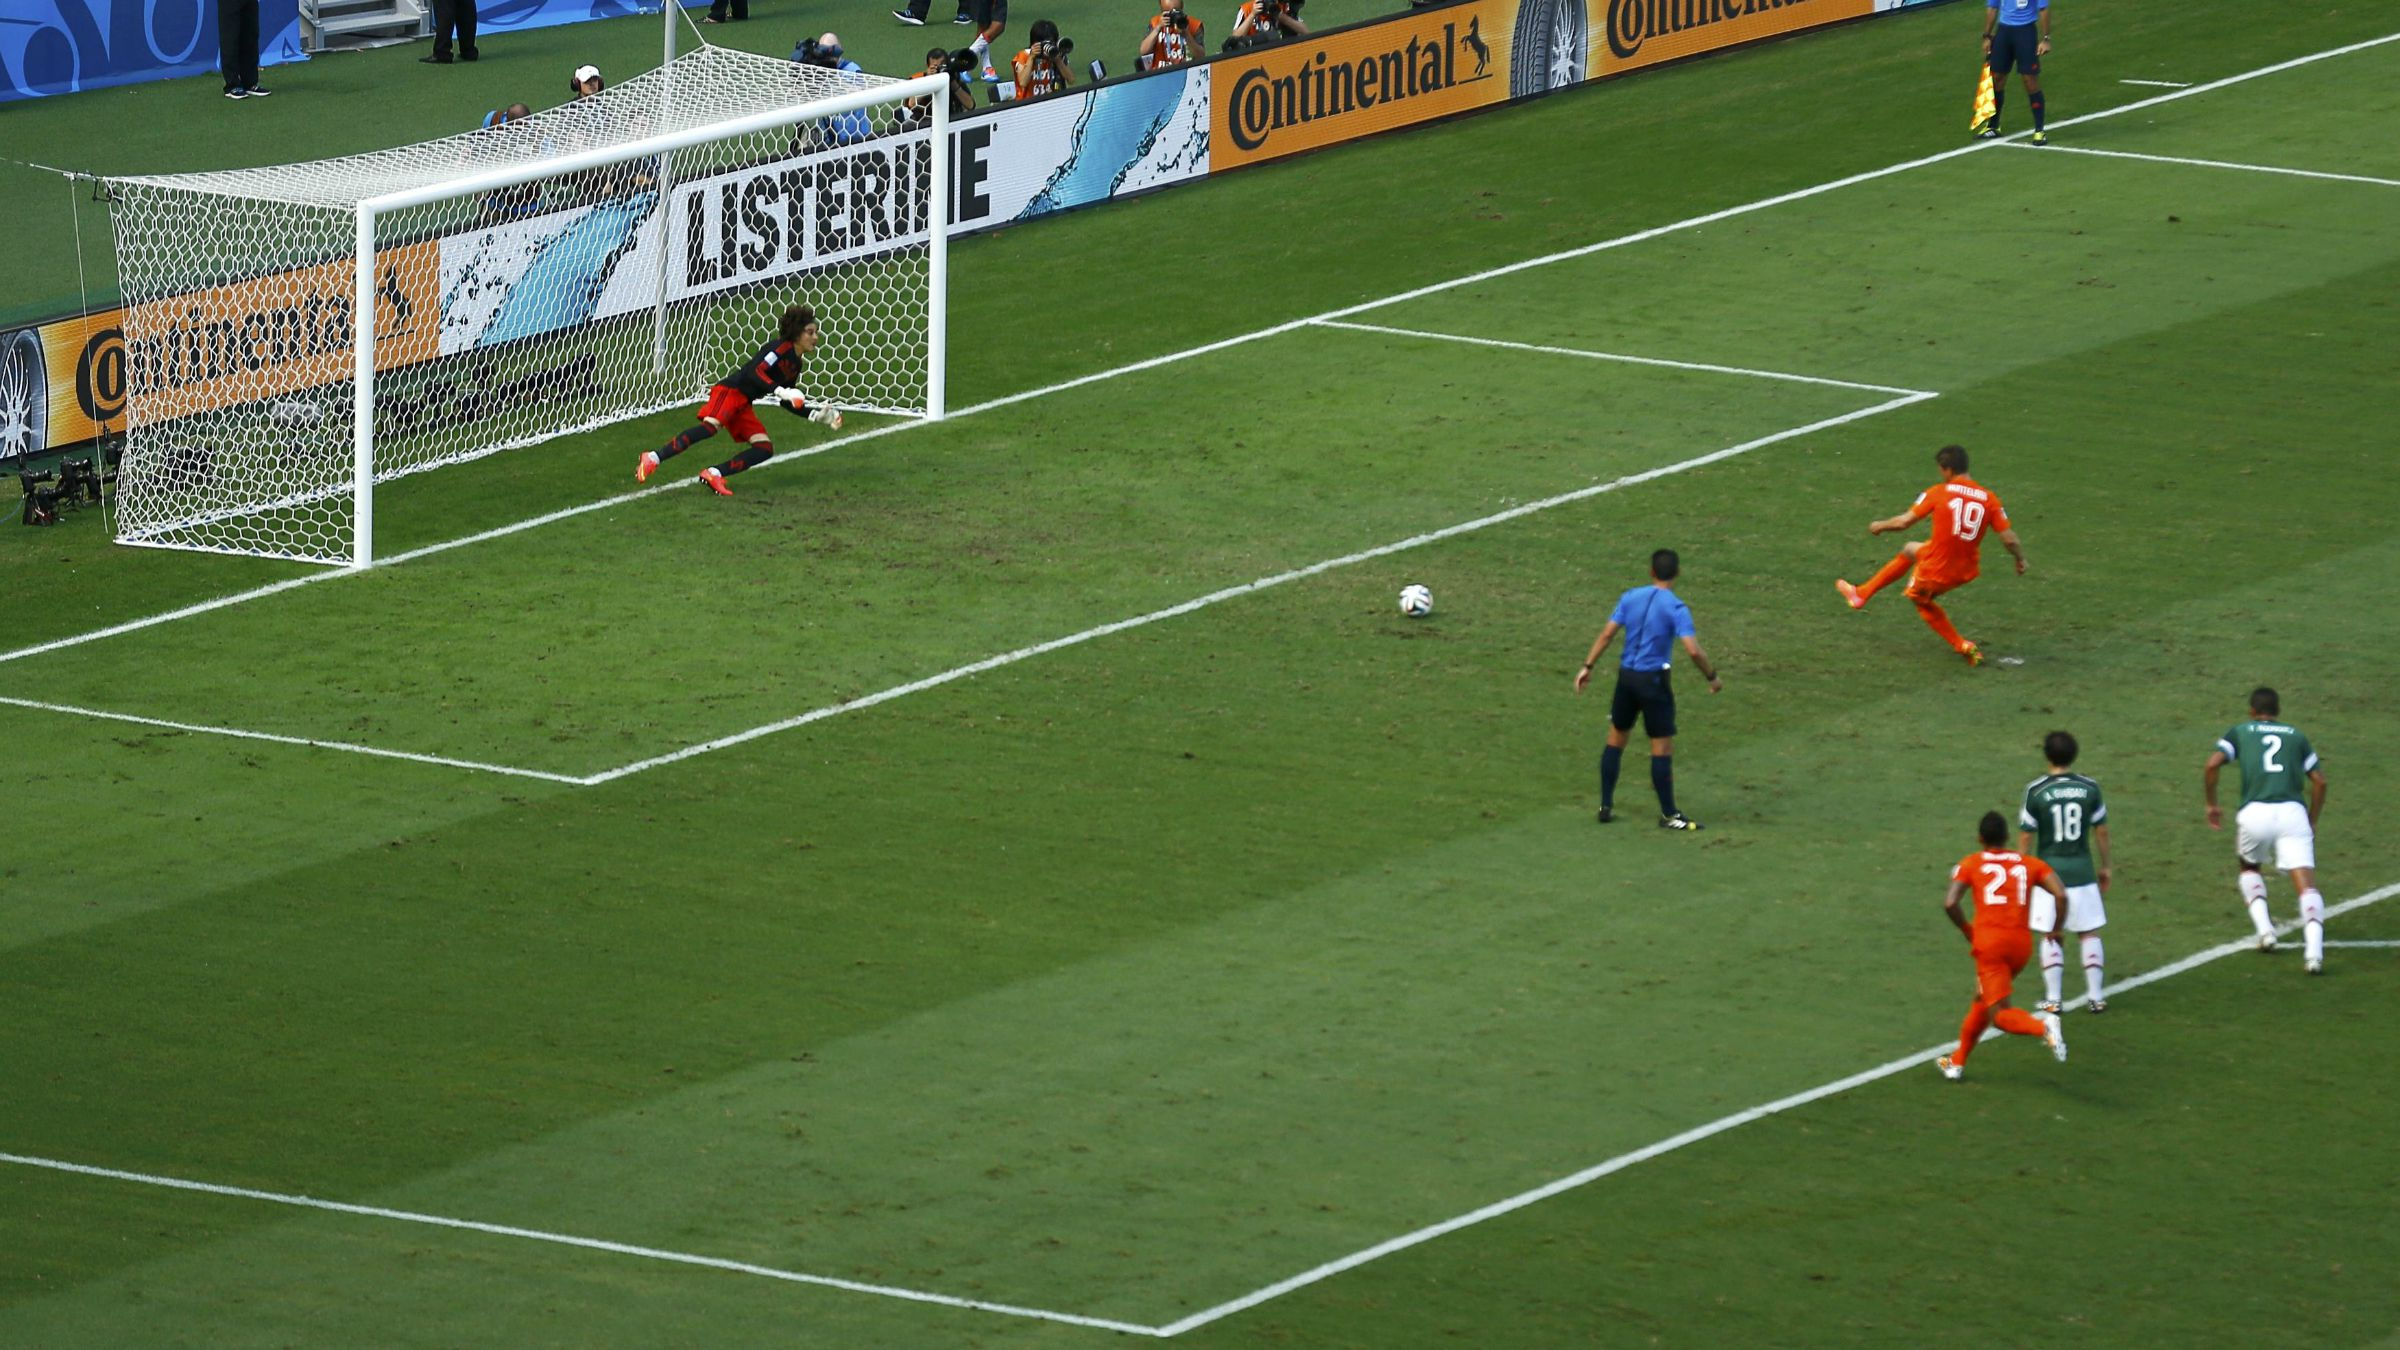 Netherlands penalty kick against Mexico at the World Cup